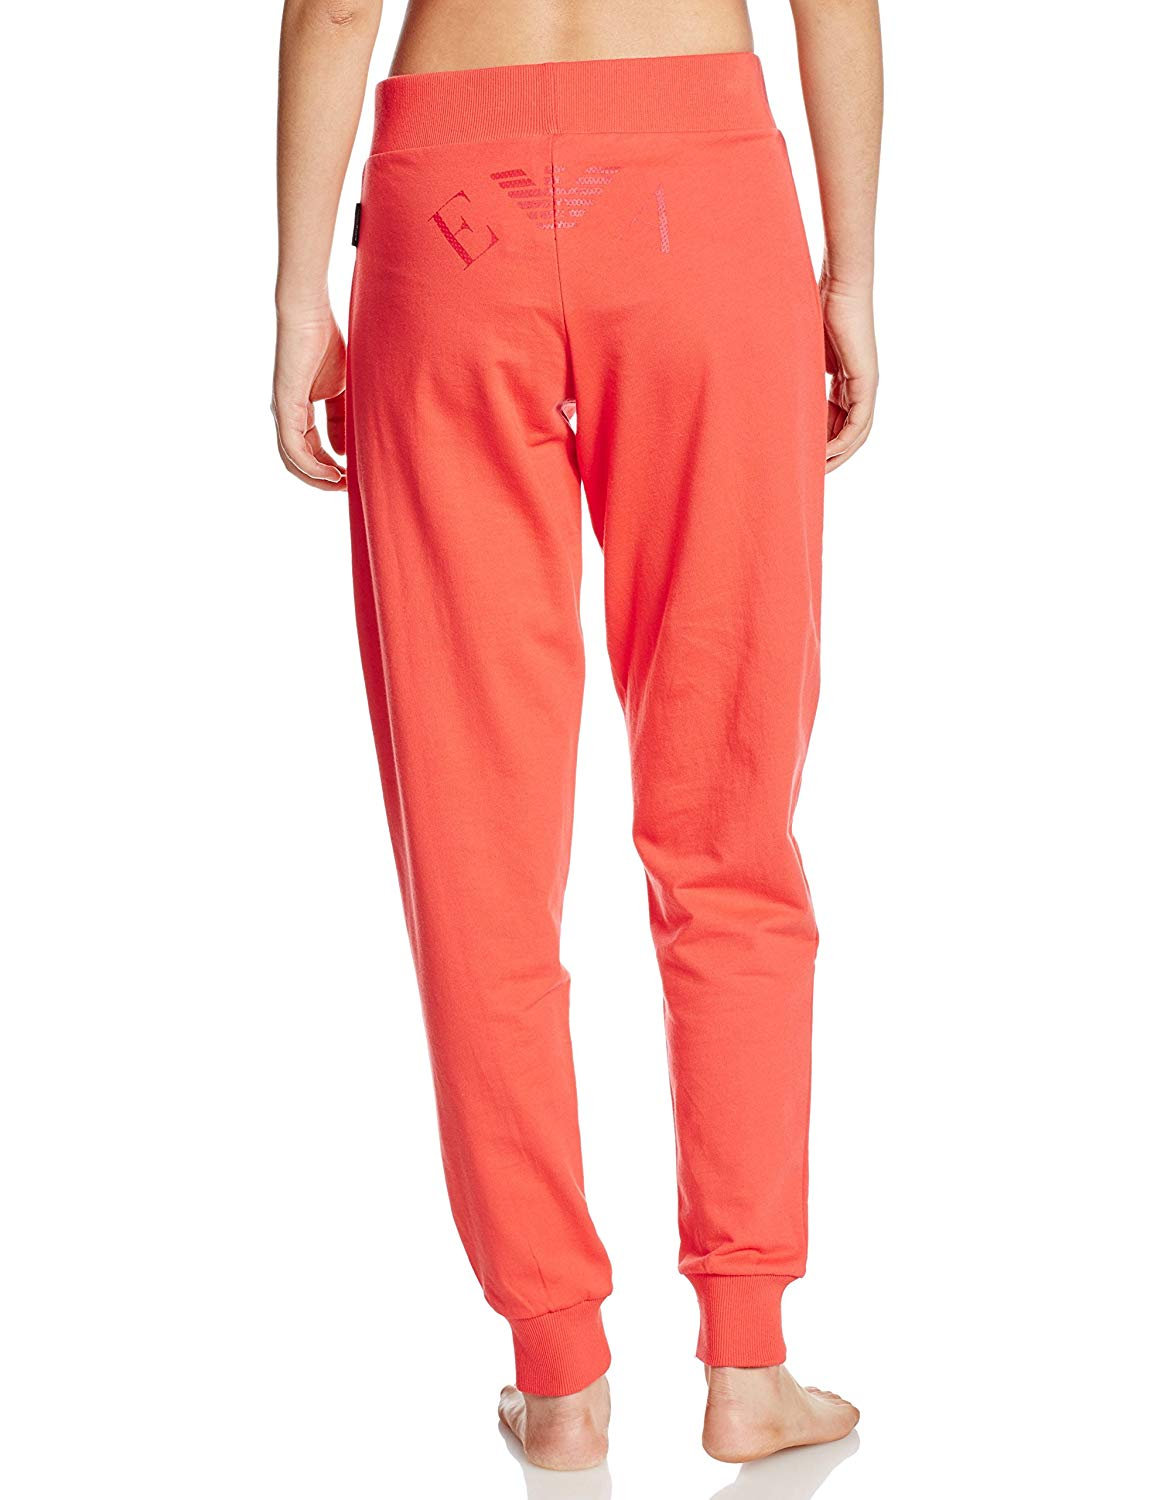 Emporio Armani Ensemble Jogging Orange Loungewear En Coton 163740